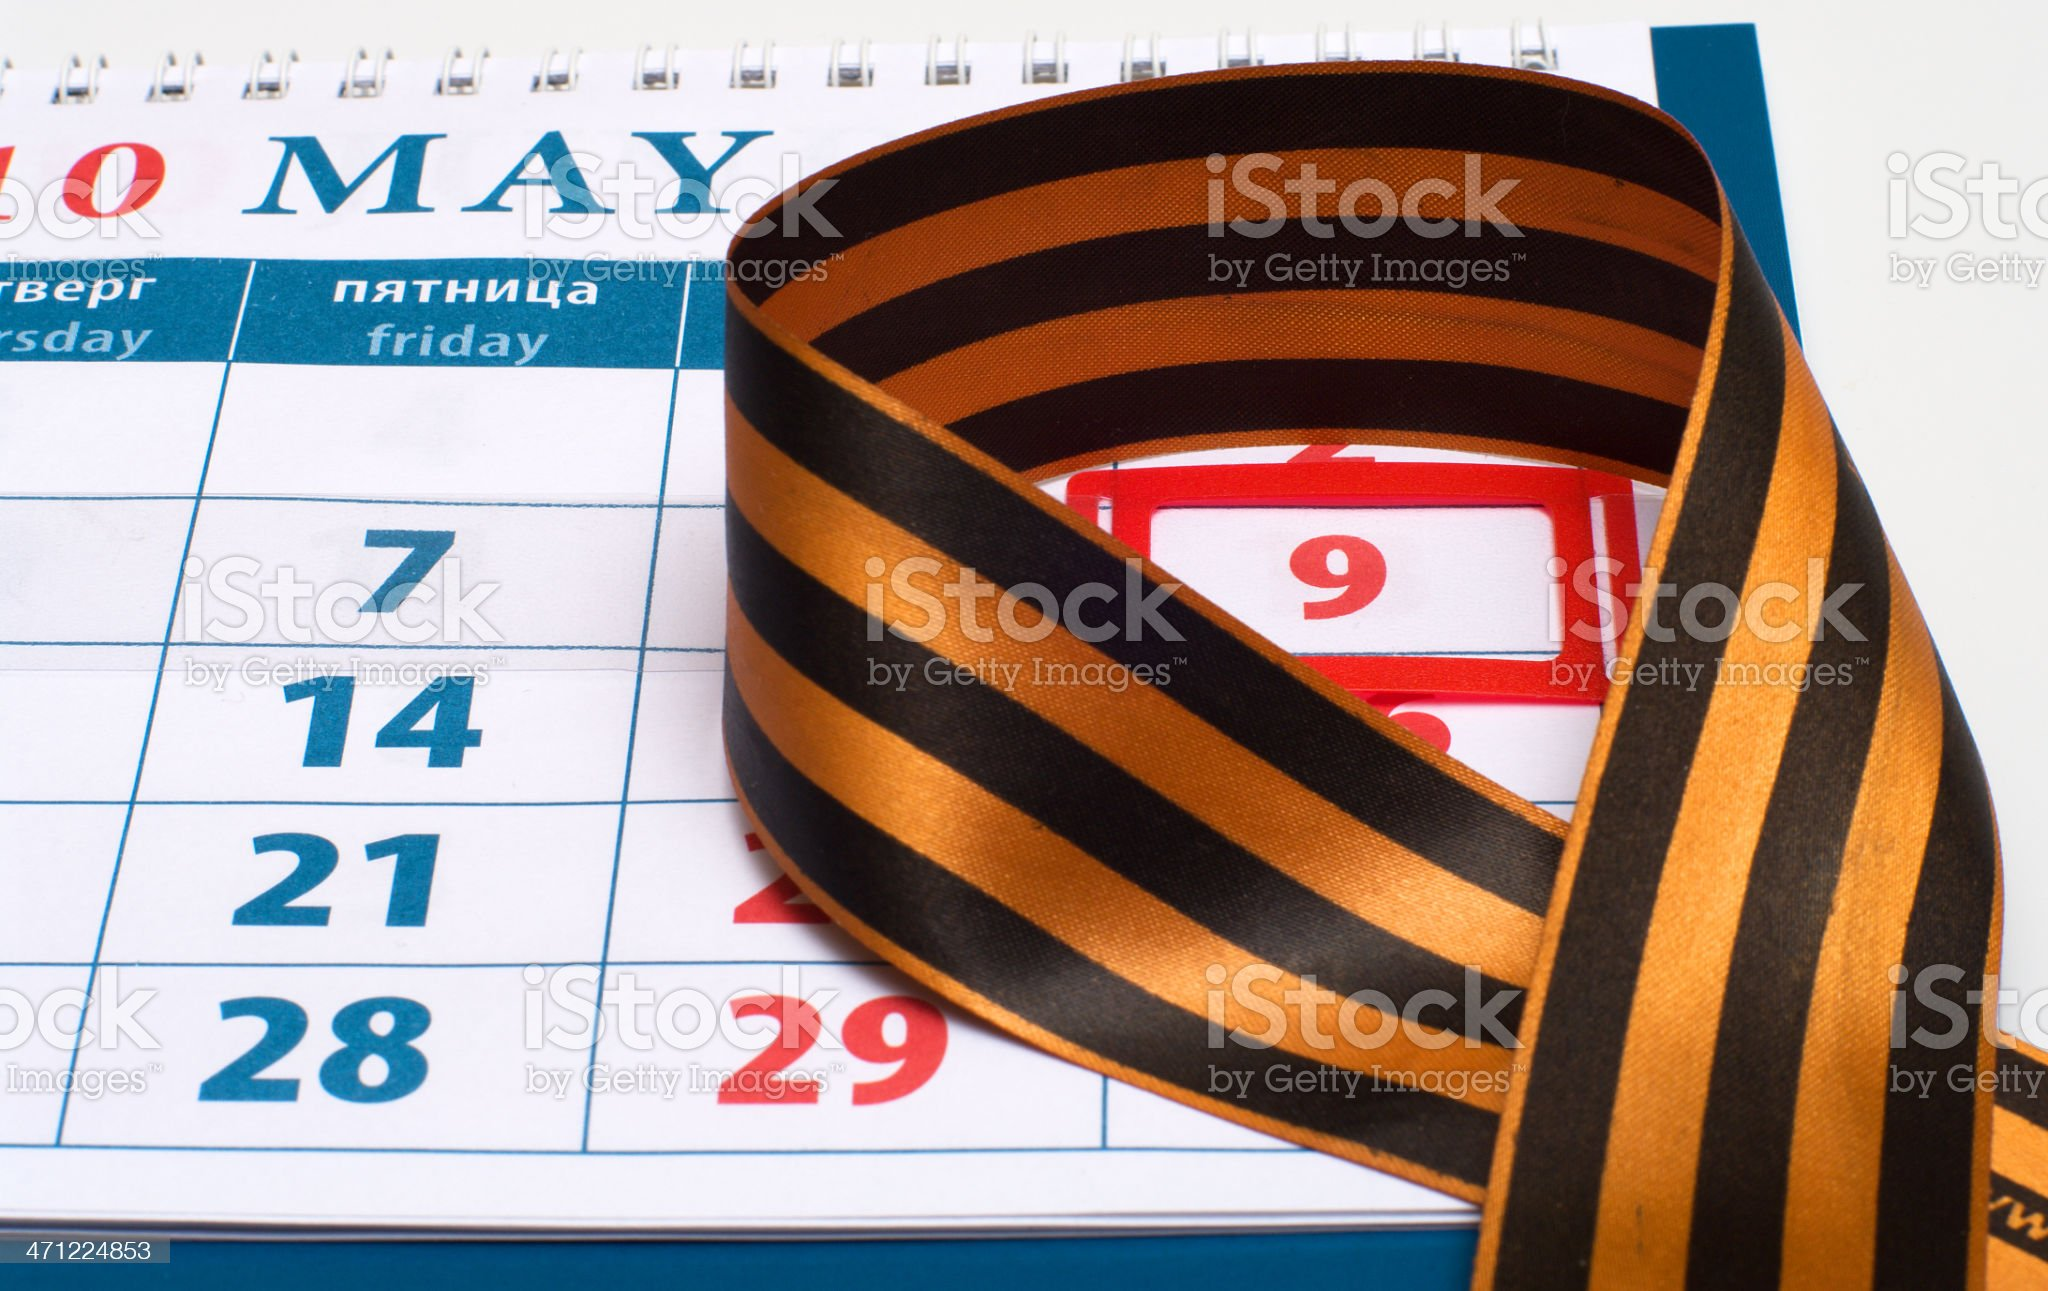 On ninth of May. royalty-free stock photo